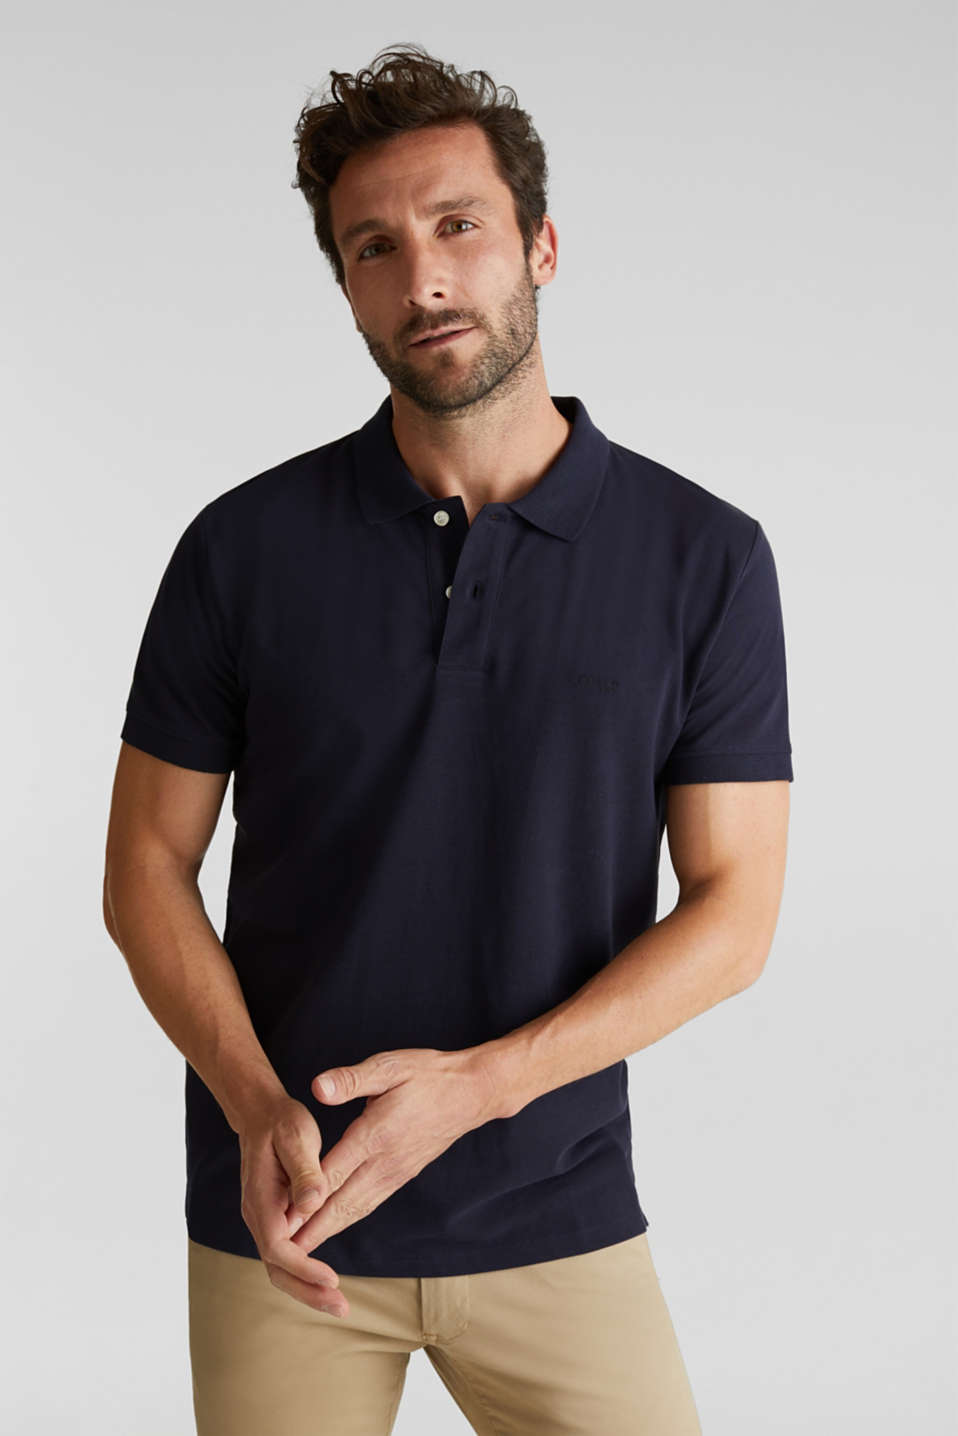 Esprit - Piqué polo shirt with contrasts, 100% cotton